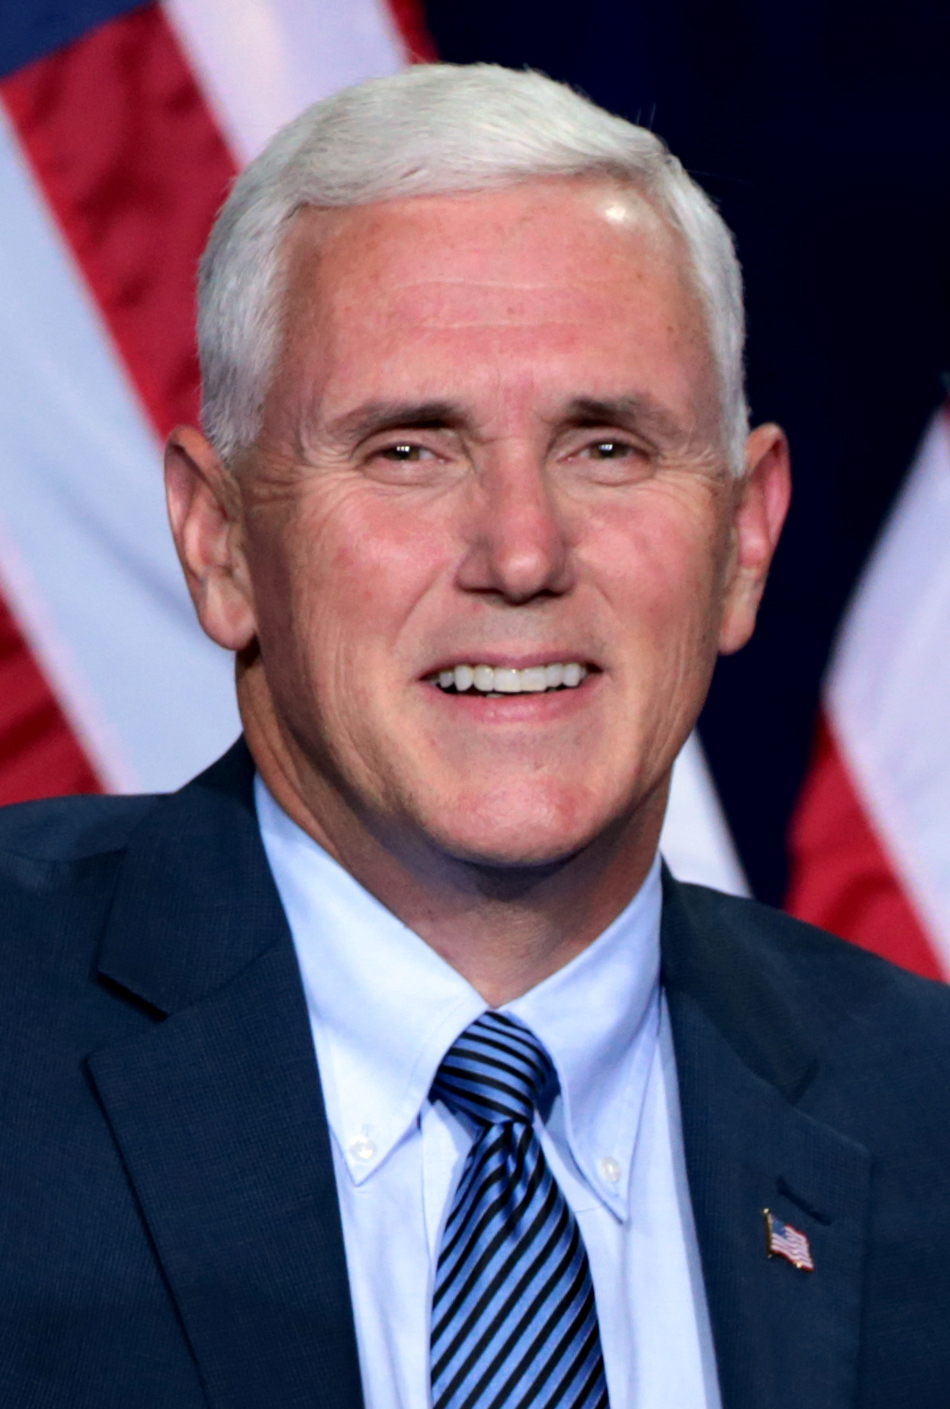 Republican vice presidential nominee Gov. Mike Pence (R-IN). Credit: Wikimedia Commons.